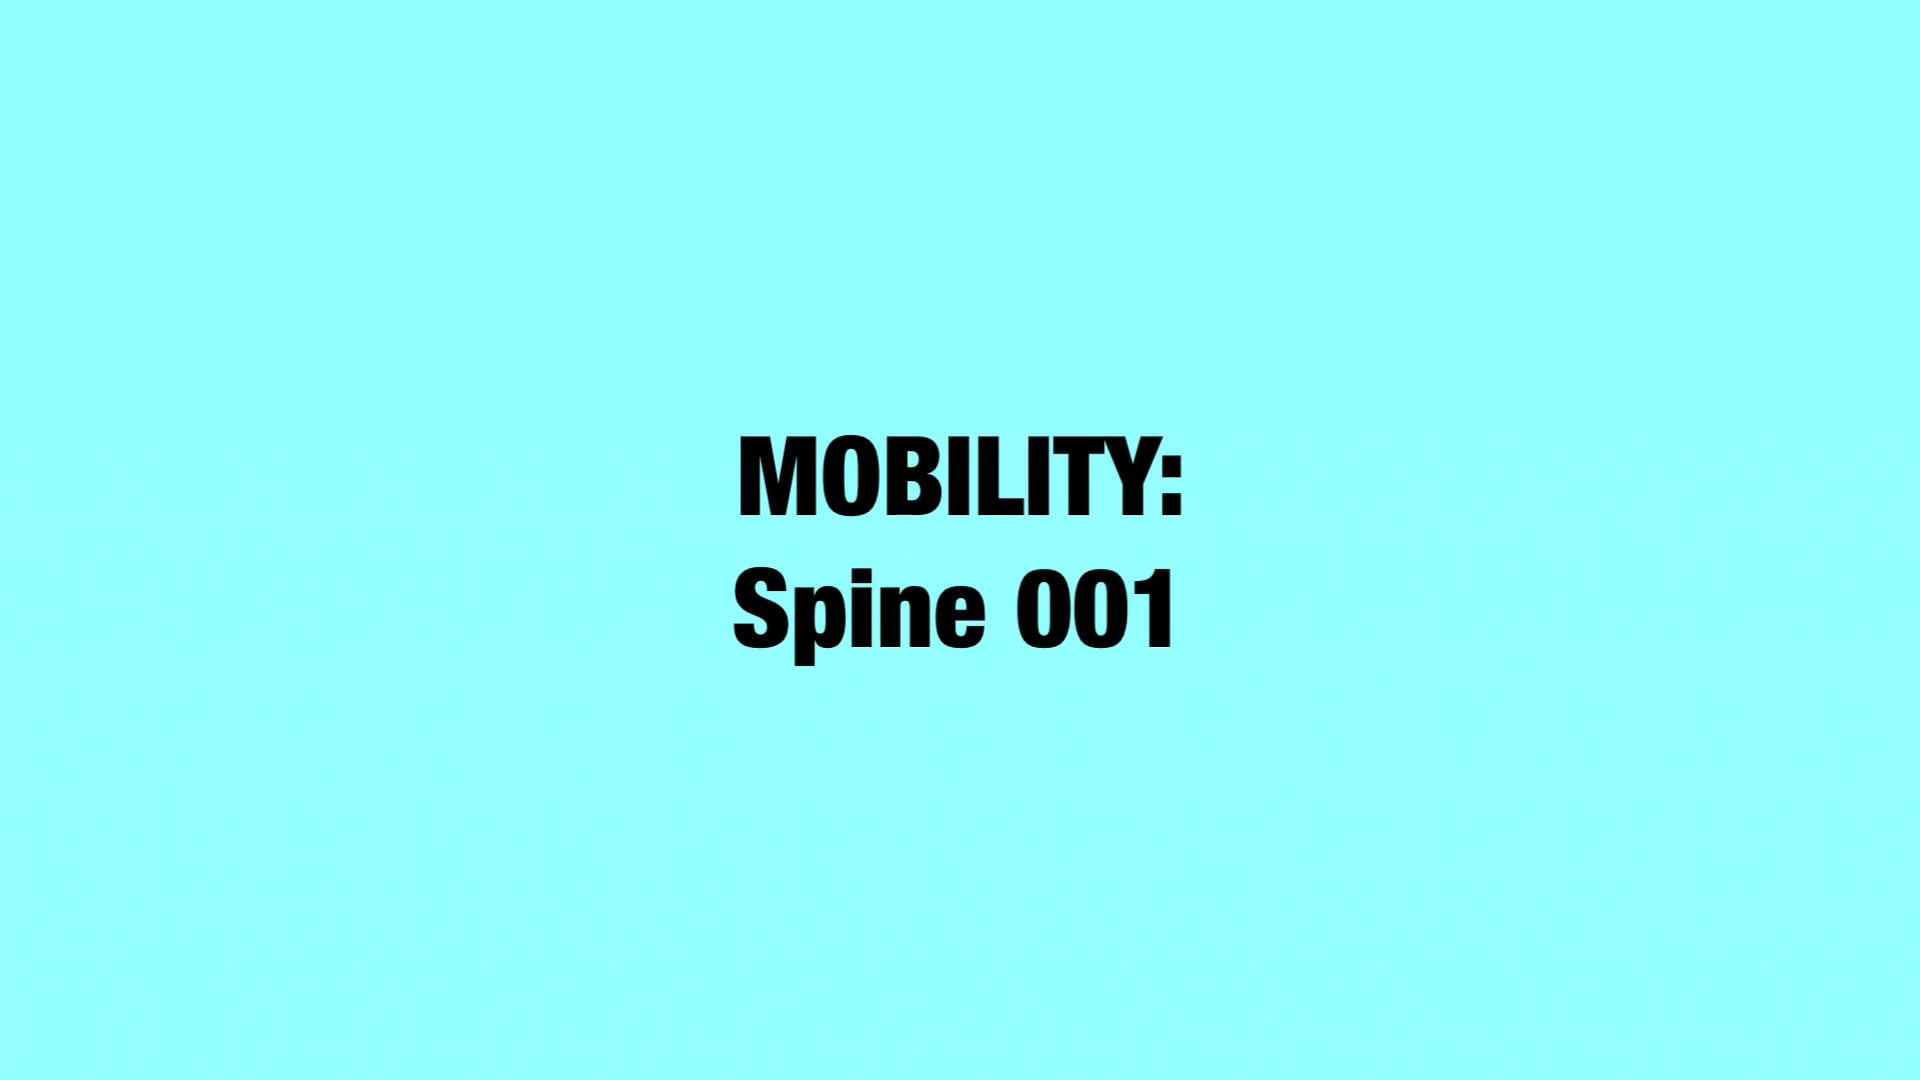 BW MOBILITY Spine 001